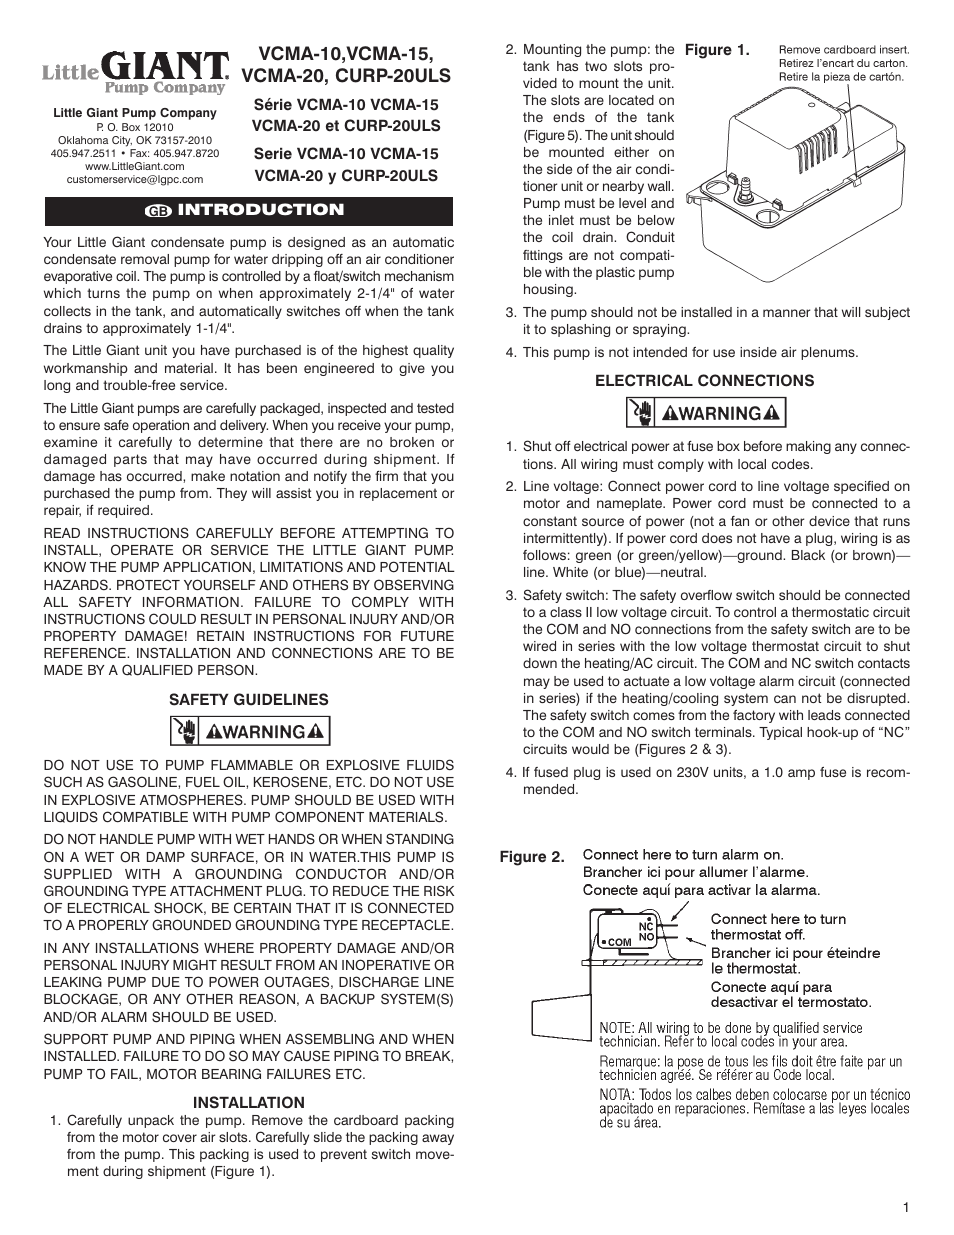 Little Giant Ladder Curp 20uls User Manual 8 Pages Also For Ac Condensate Pump Wiring Diagram Vcma 20 10 15